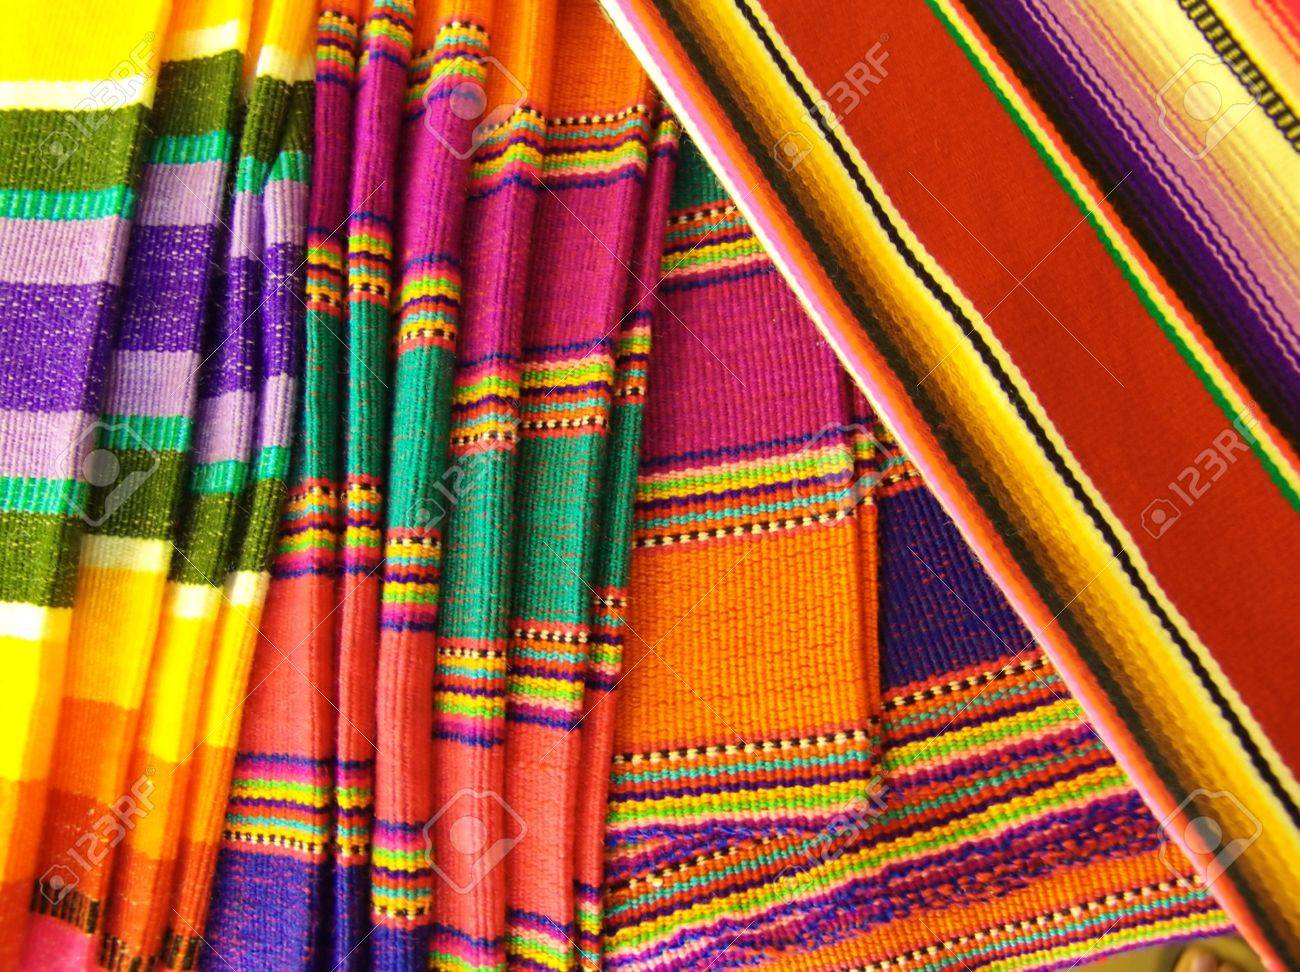 colorful mexican blankets taken in cozumel mexico stock photo  - colorful mexican blankets taken in cozumel mexico stock photo